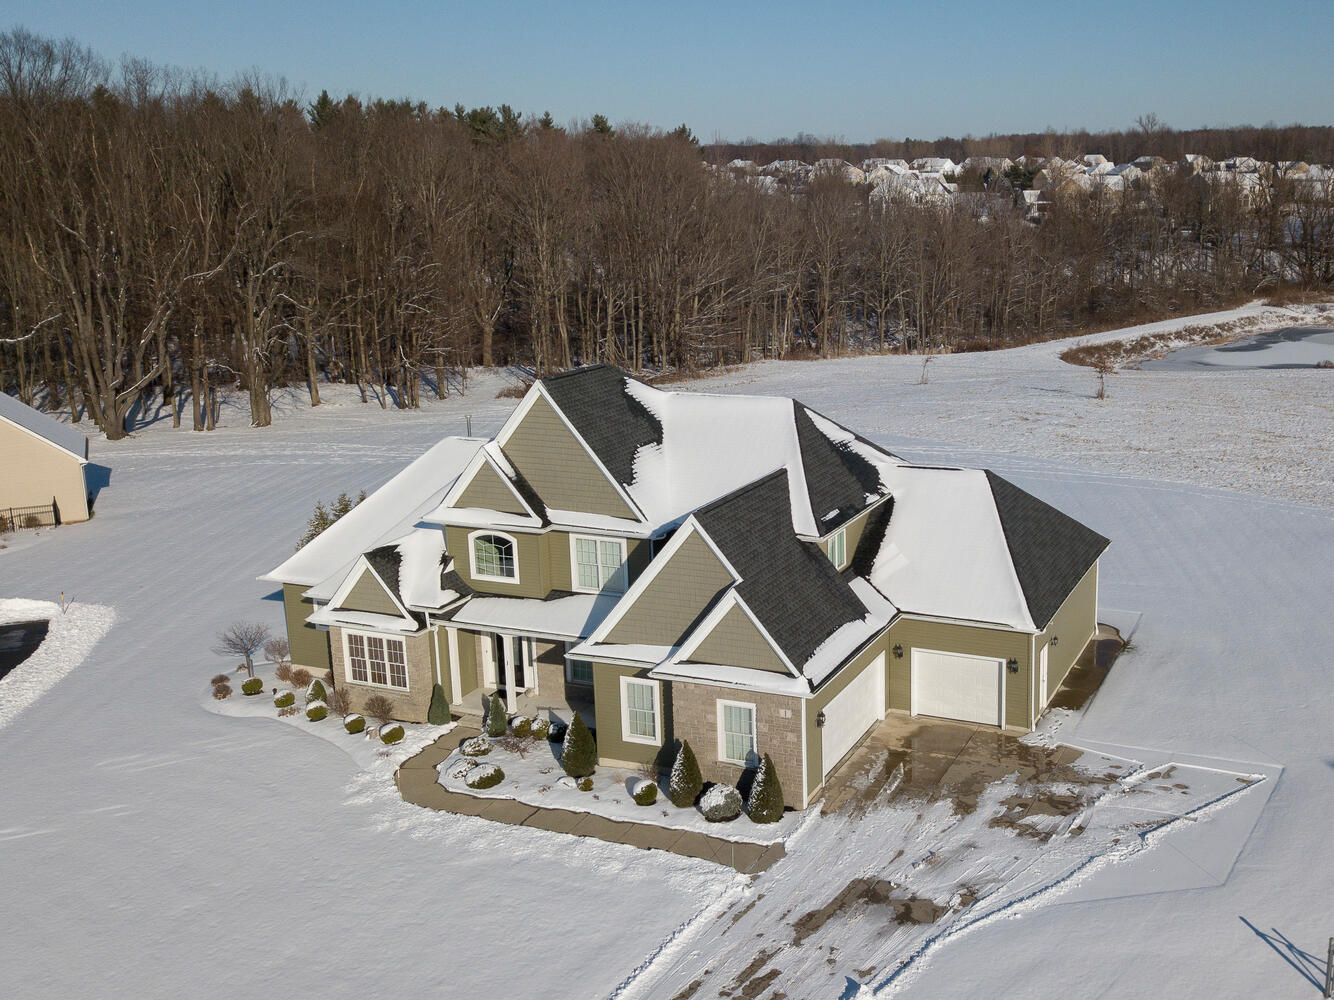 1 Evergreen Trail Orchard Park-large-030-003-Aerial-1335×1000-72dpi